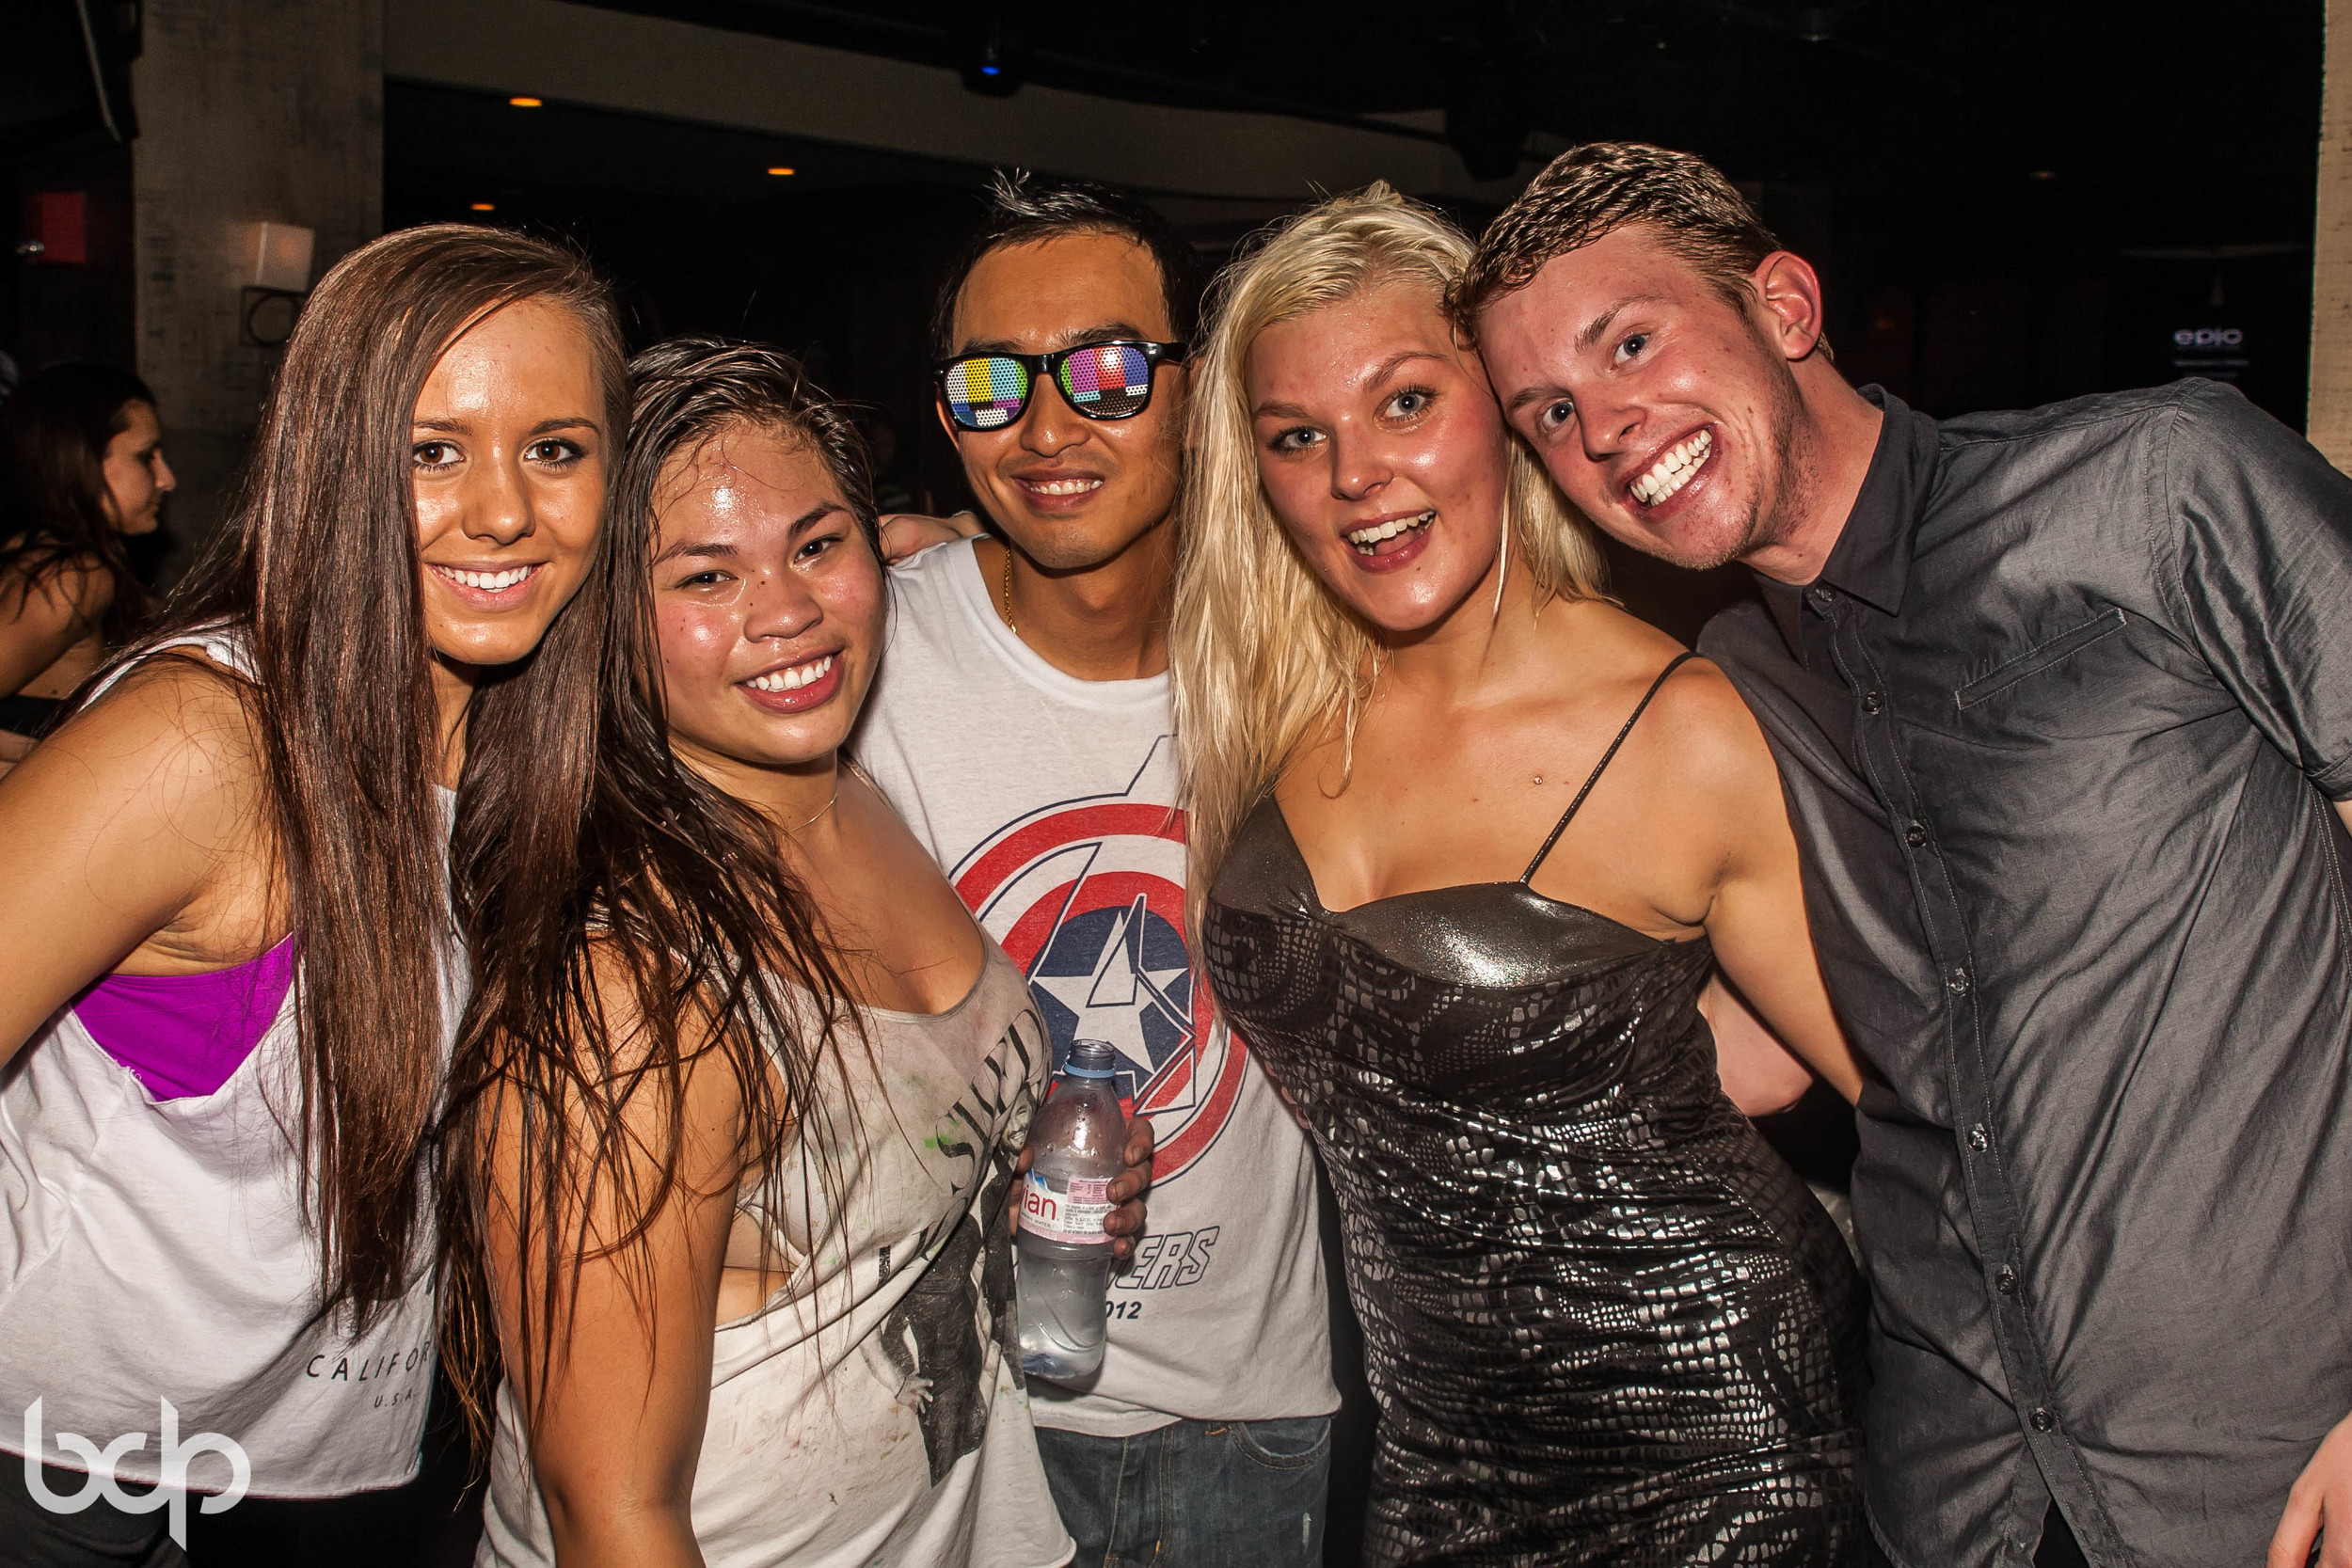 Aokify America Tour at Epic at Epic 110913 BDP-147.jpg